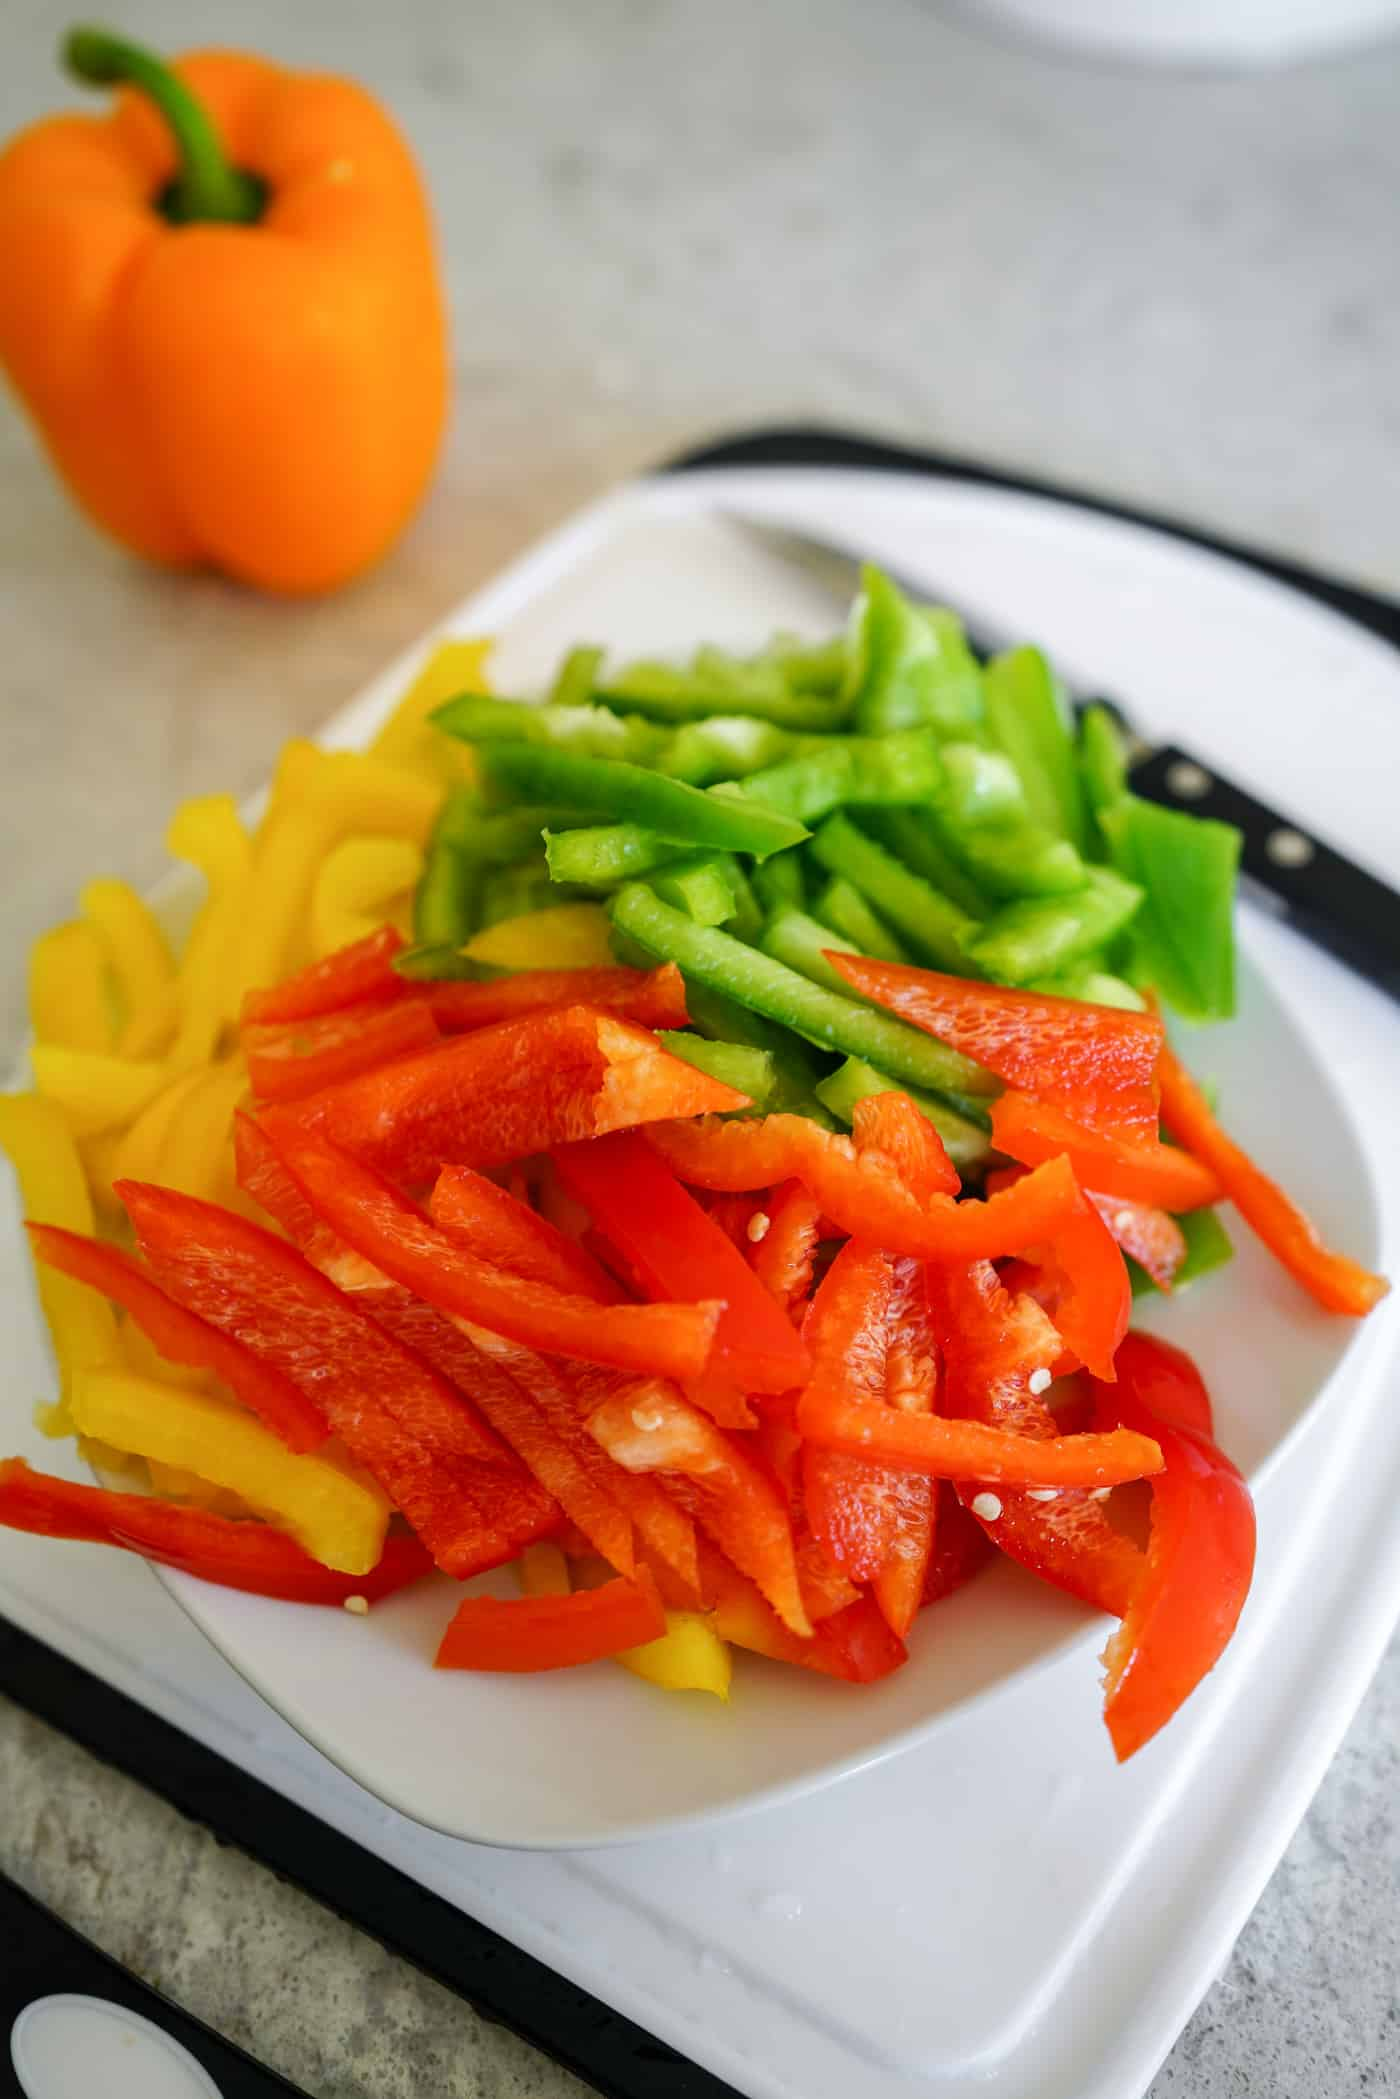 A plate filled with chopped red, green and yellow bell peppers for Instant Pot Chicken Fajita Pasta recipe.